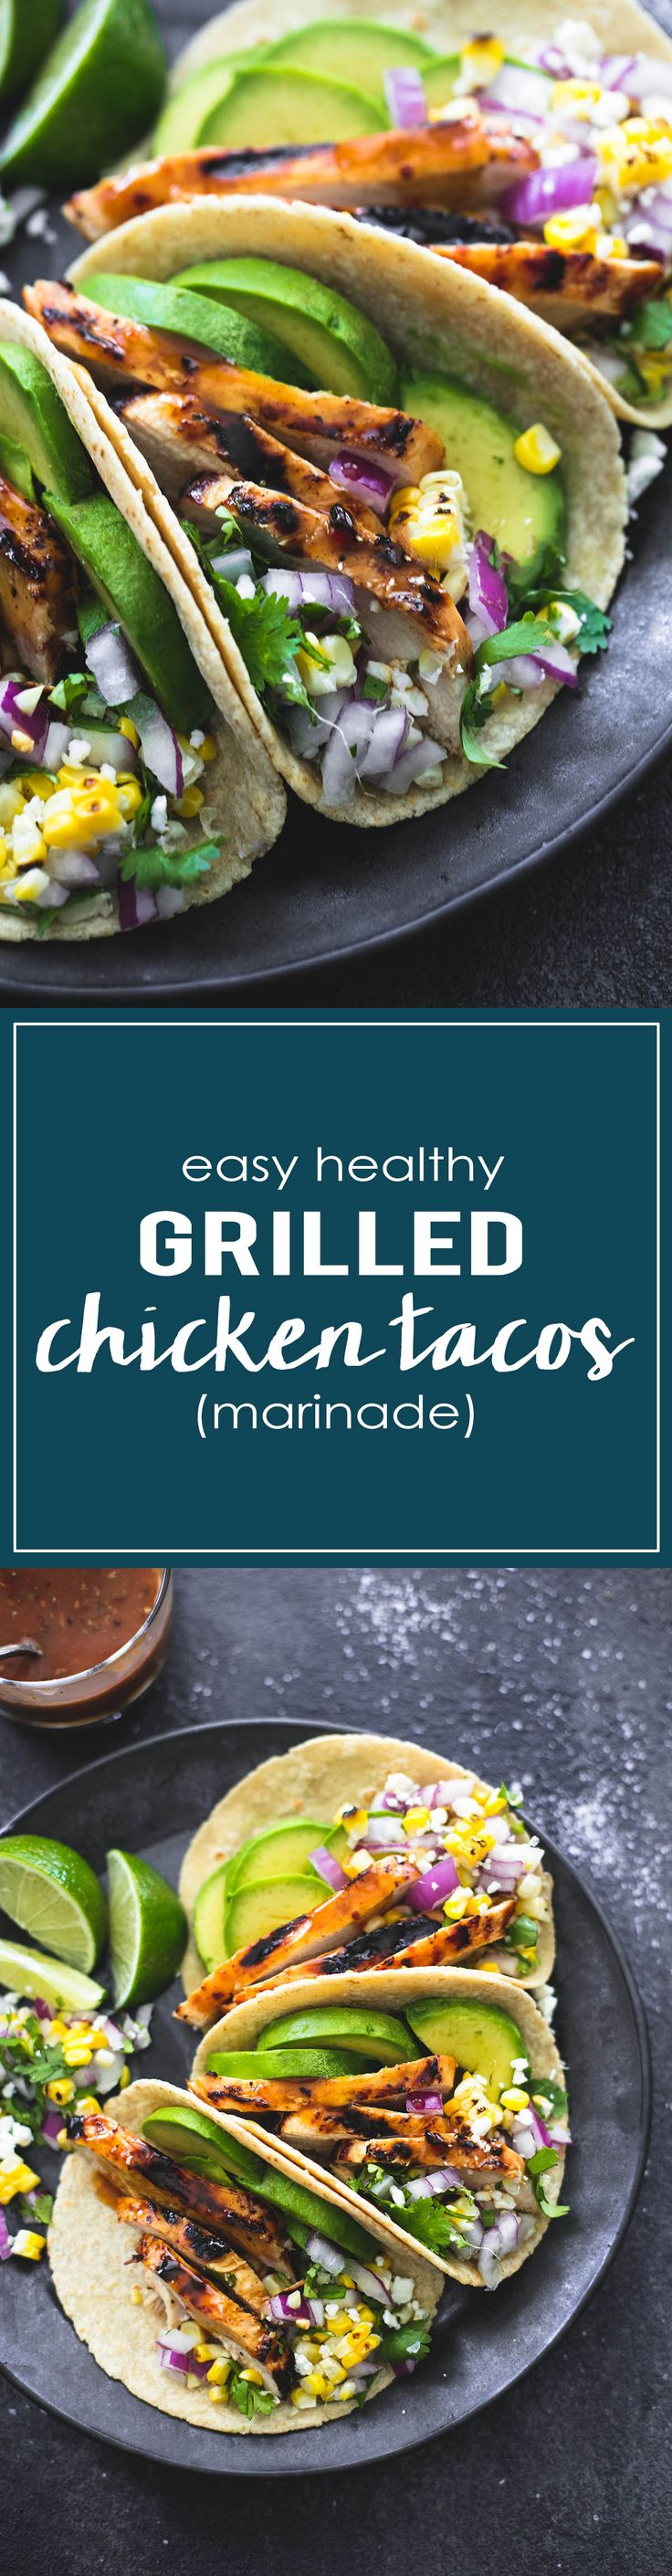 The BEST EVER Marinade for Grilled Chicken Tacos | lecremedelacrumb.com